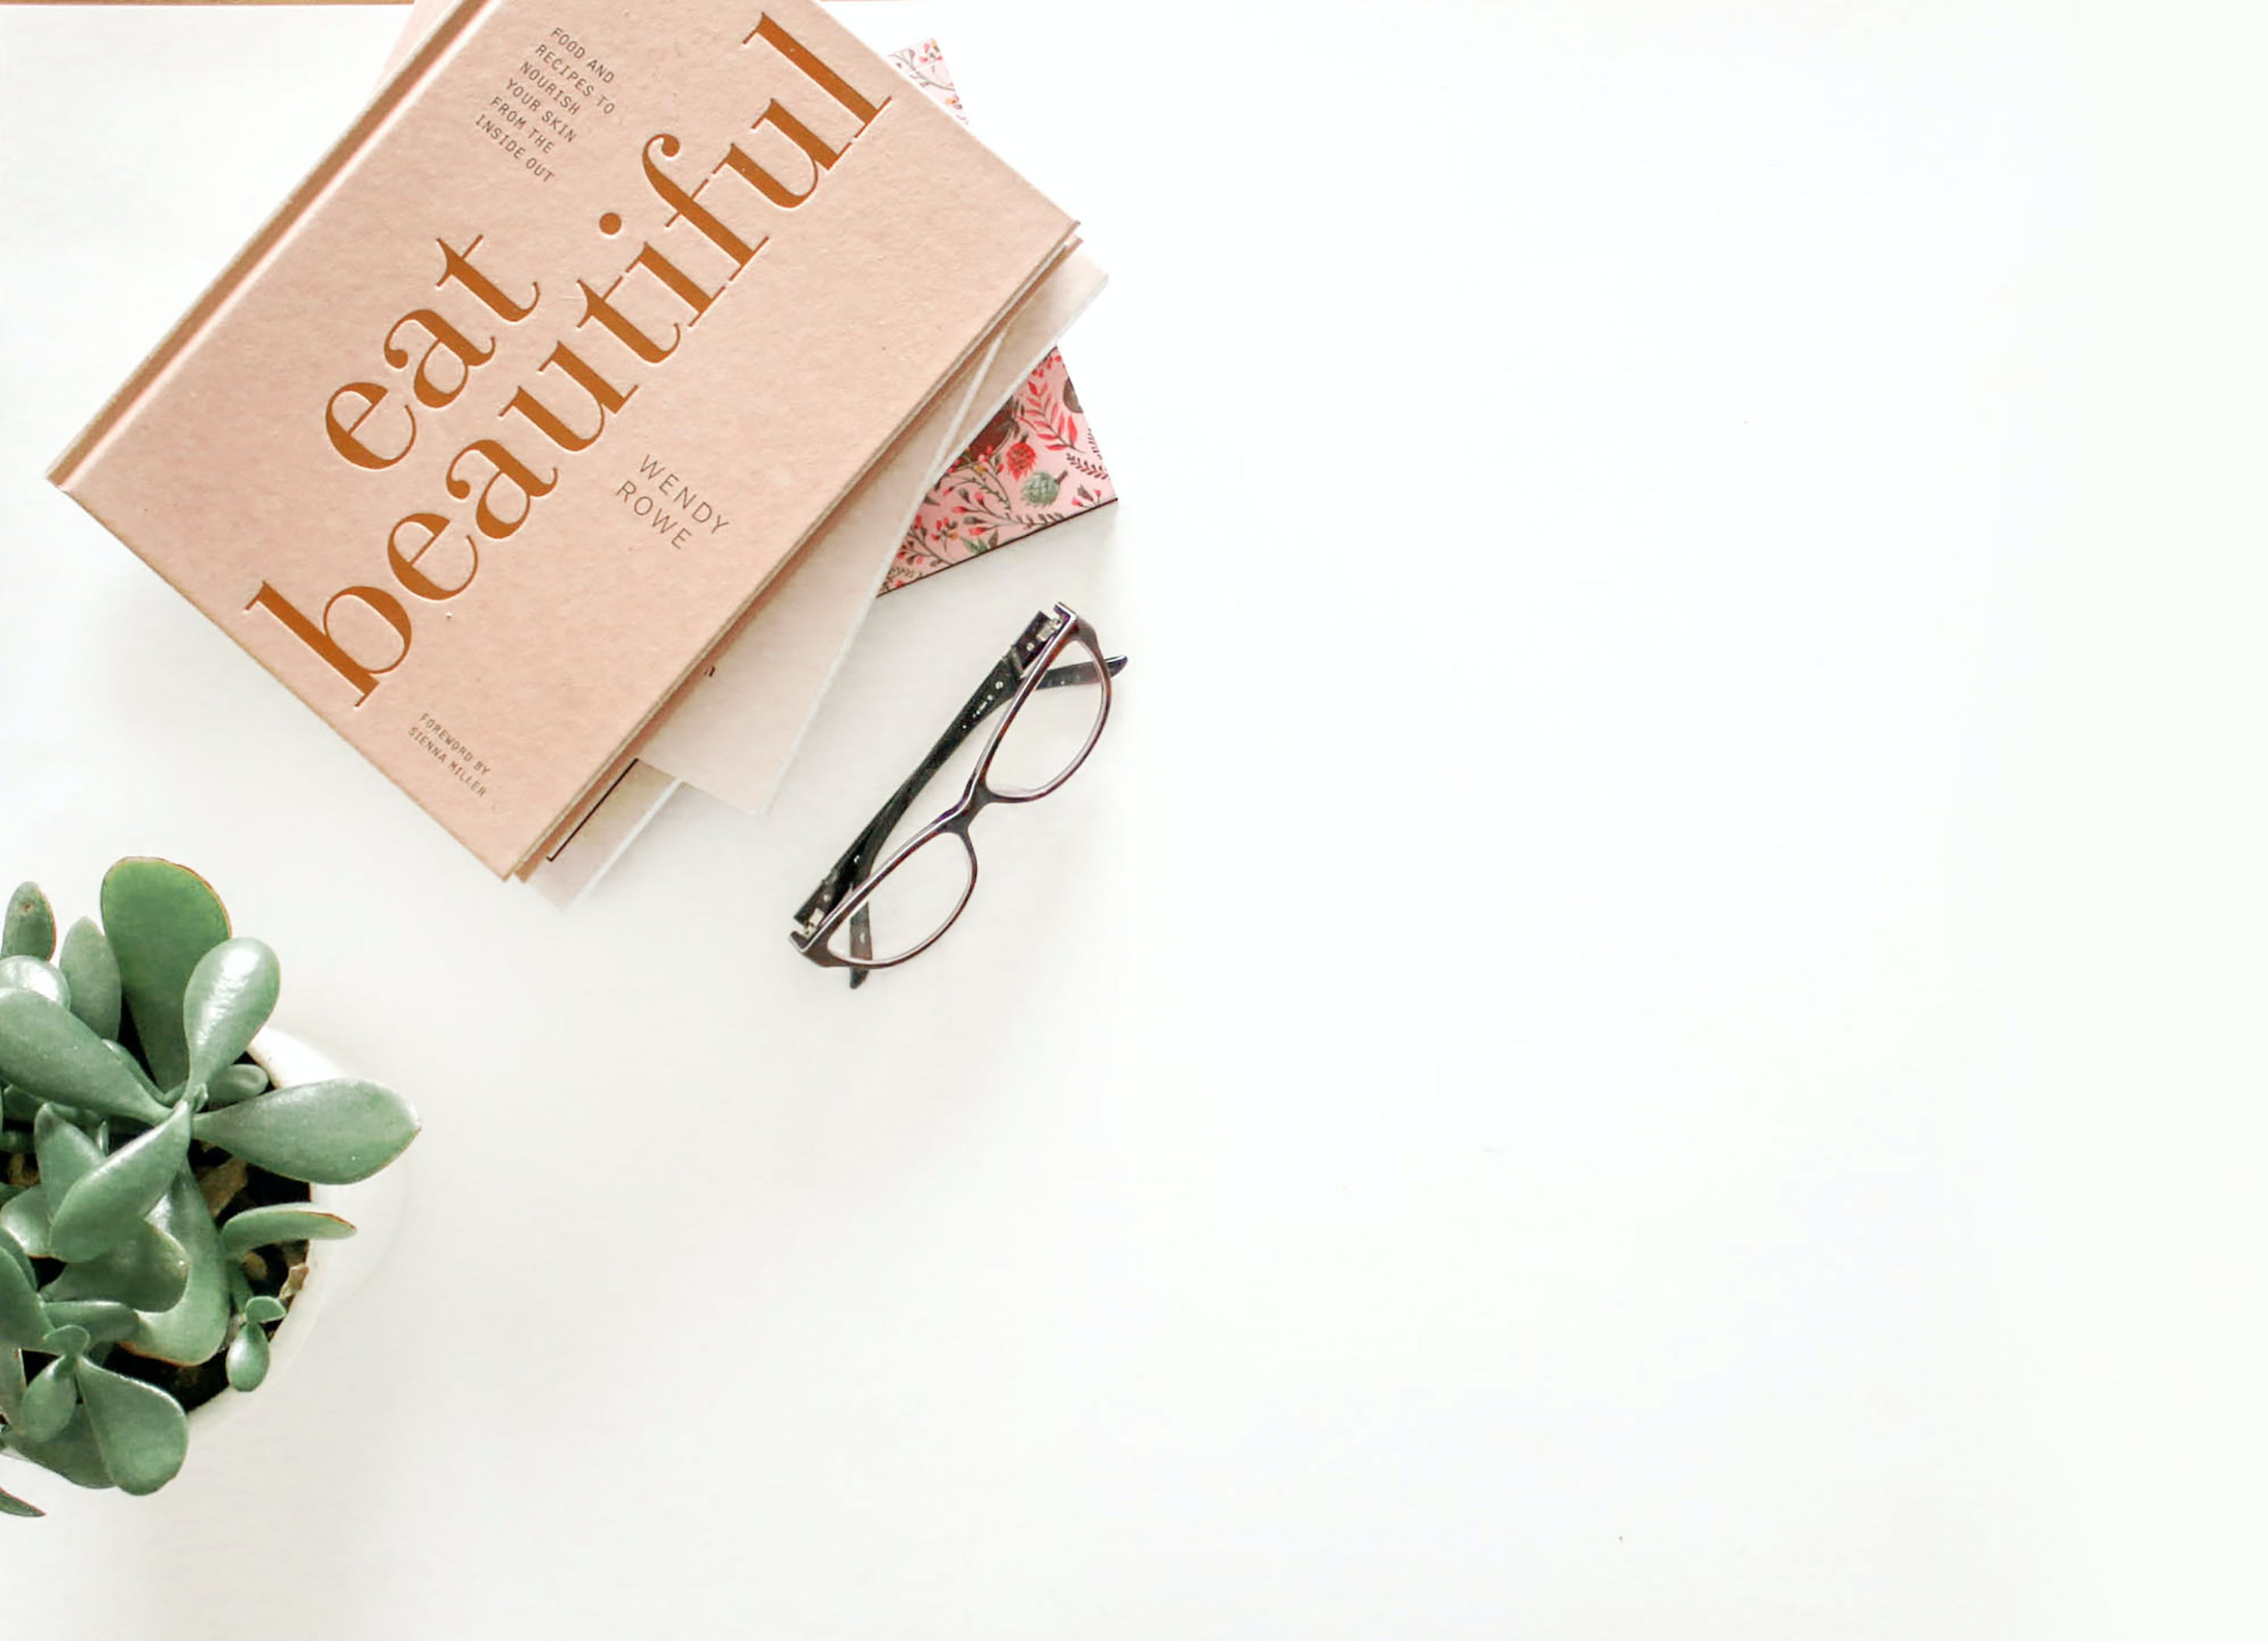 Brown Framed Eyeglasses Beside Eat Beautiful Book